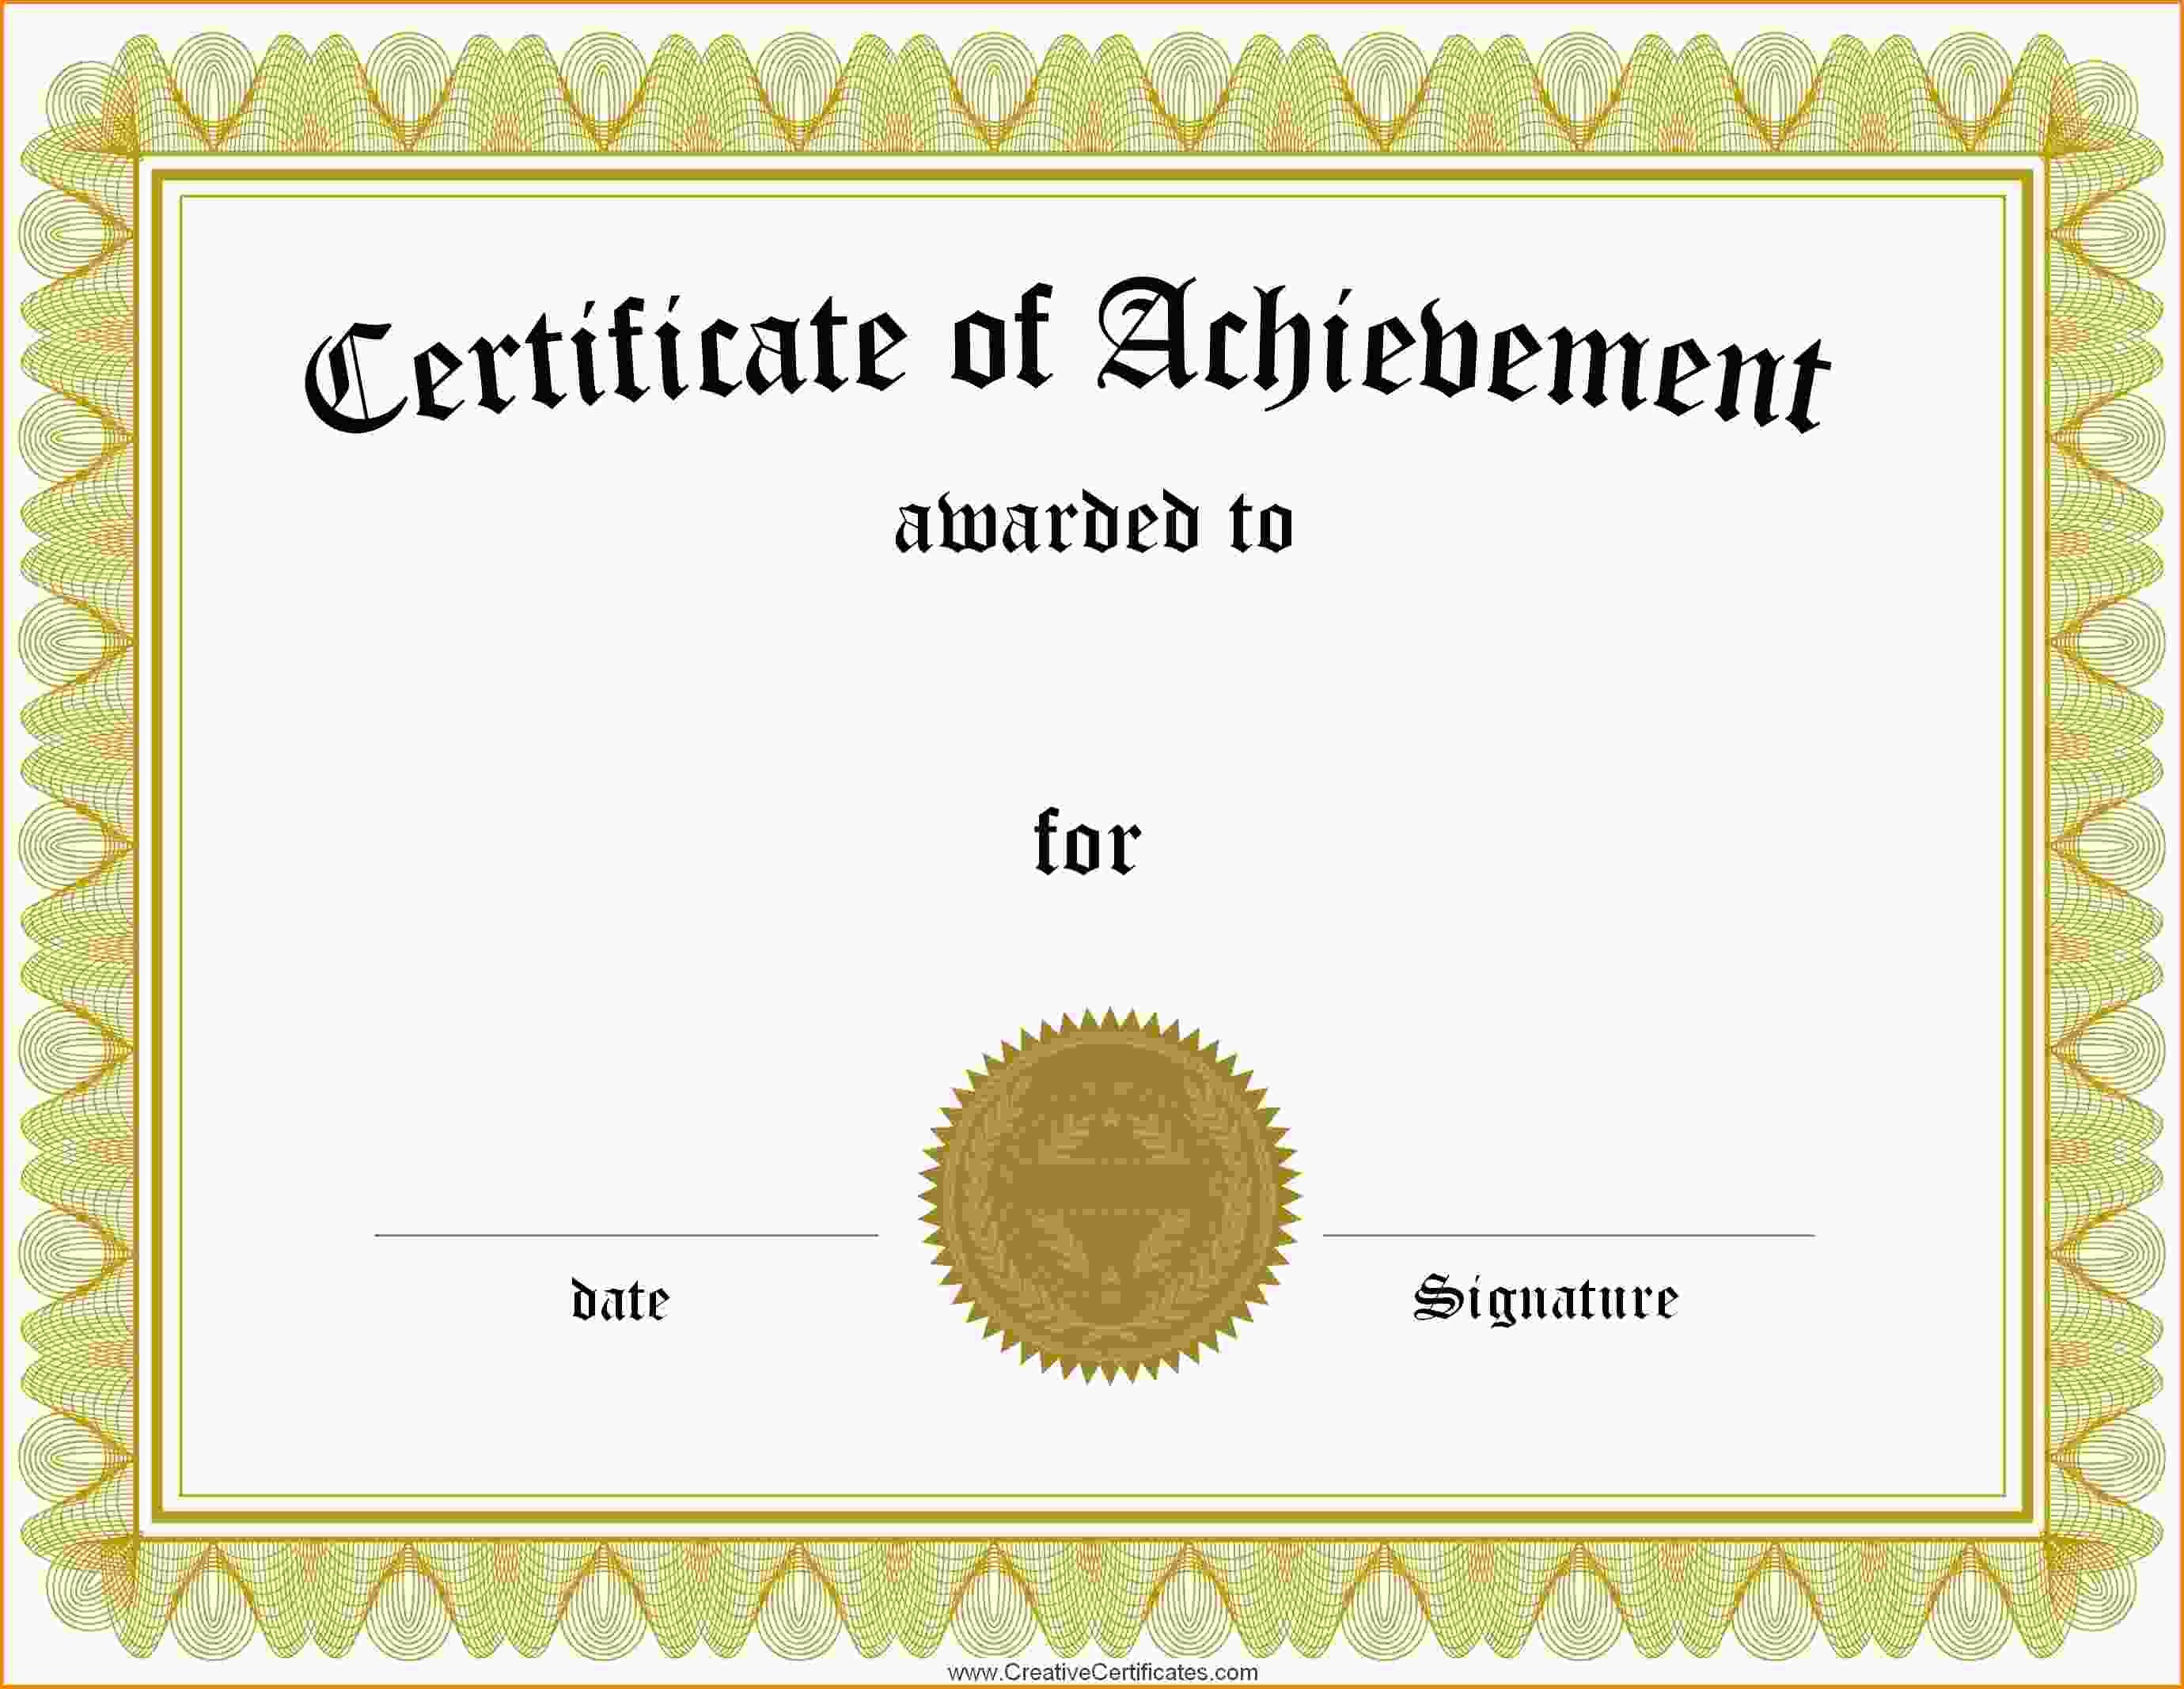 Png Certificates Award Transparent Certificates Awardg Images